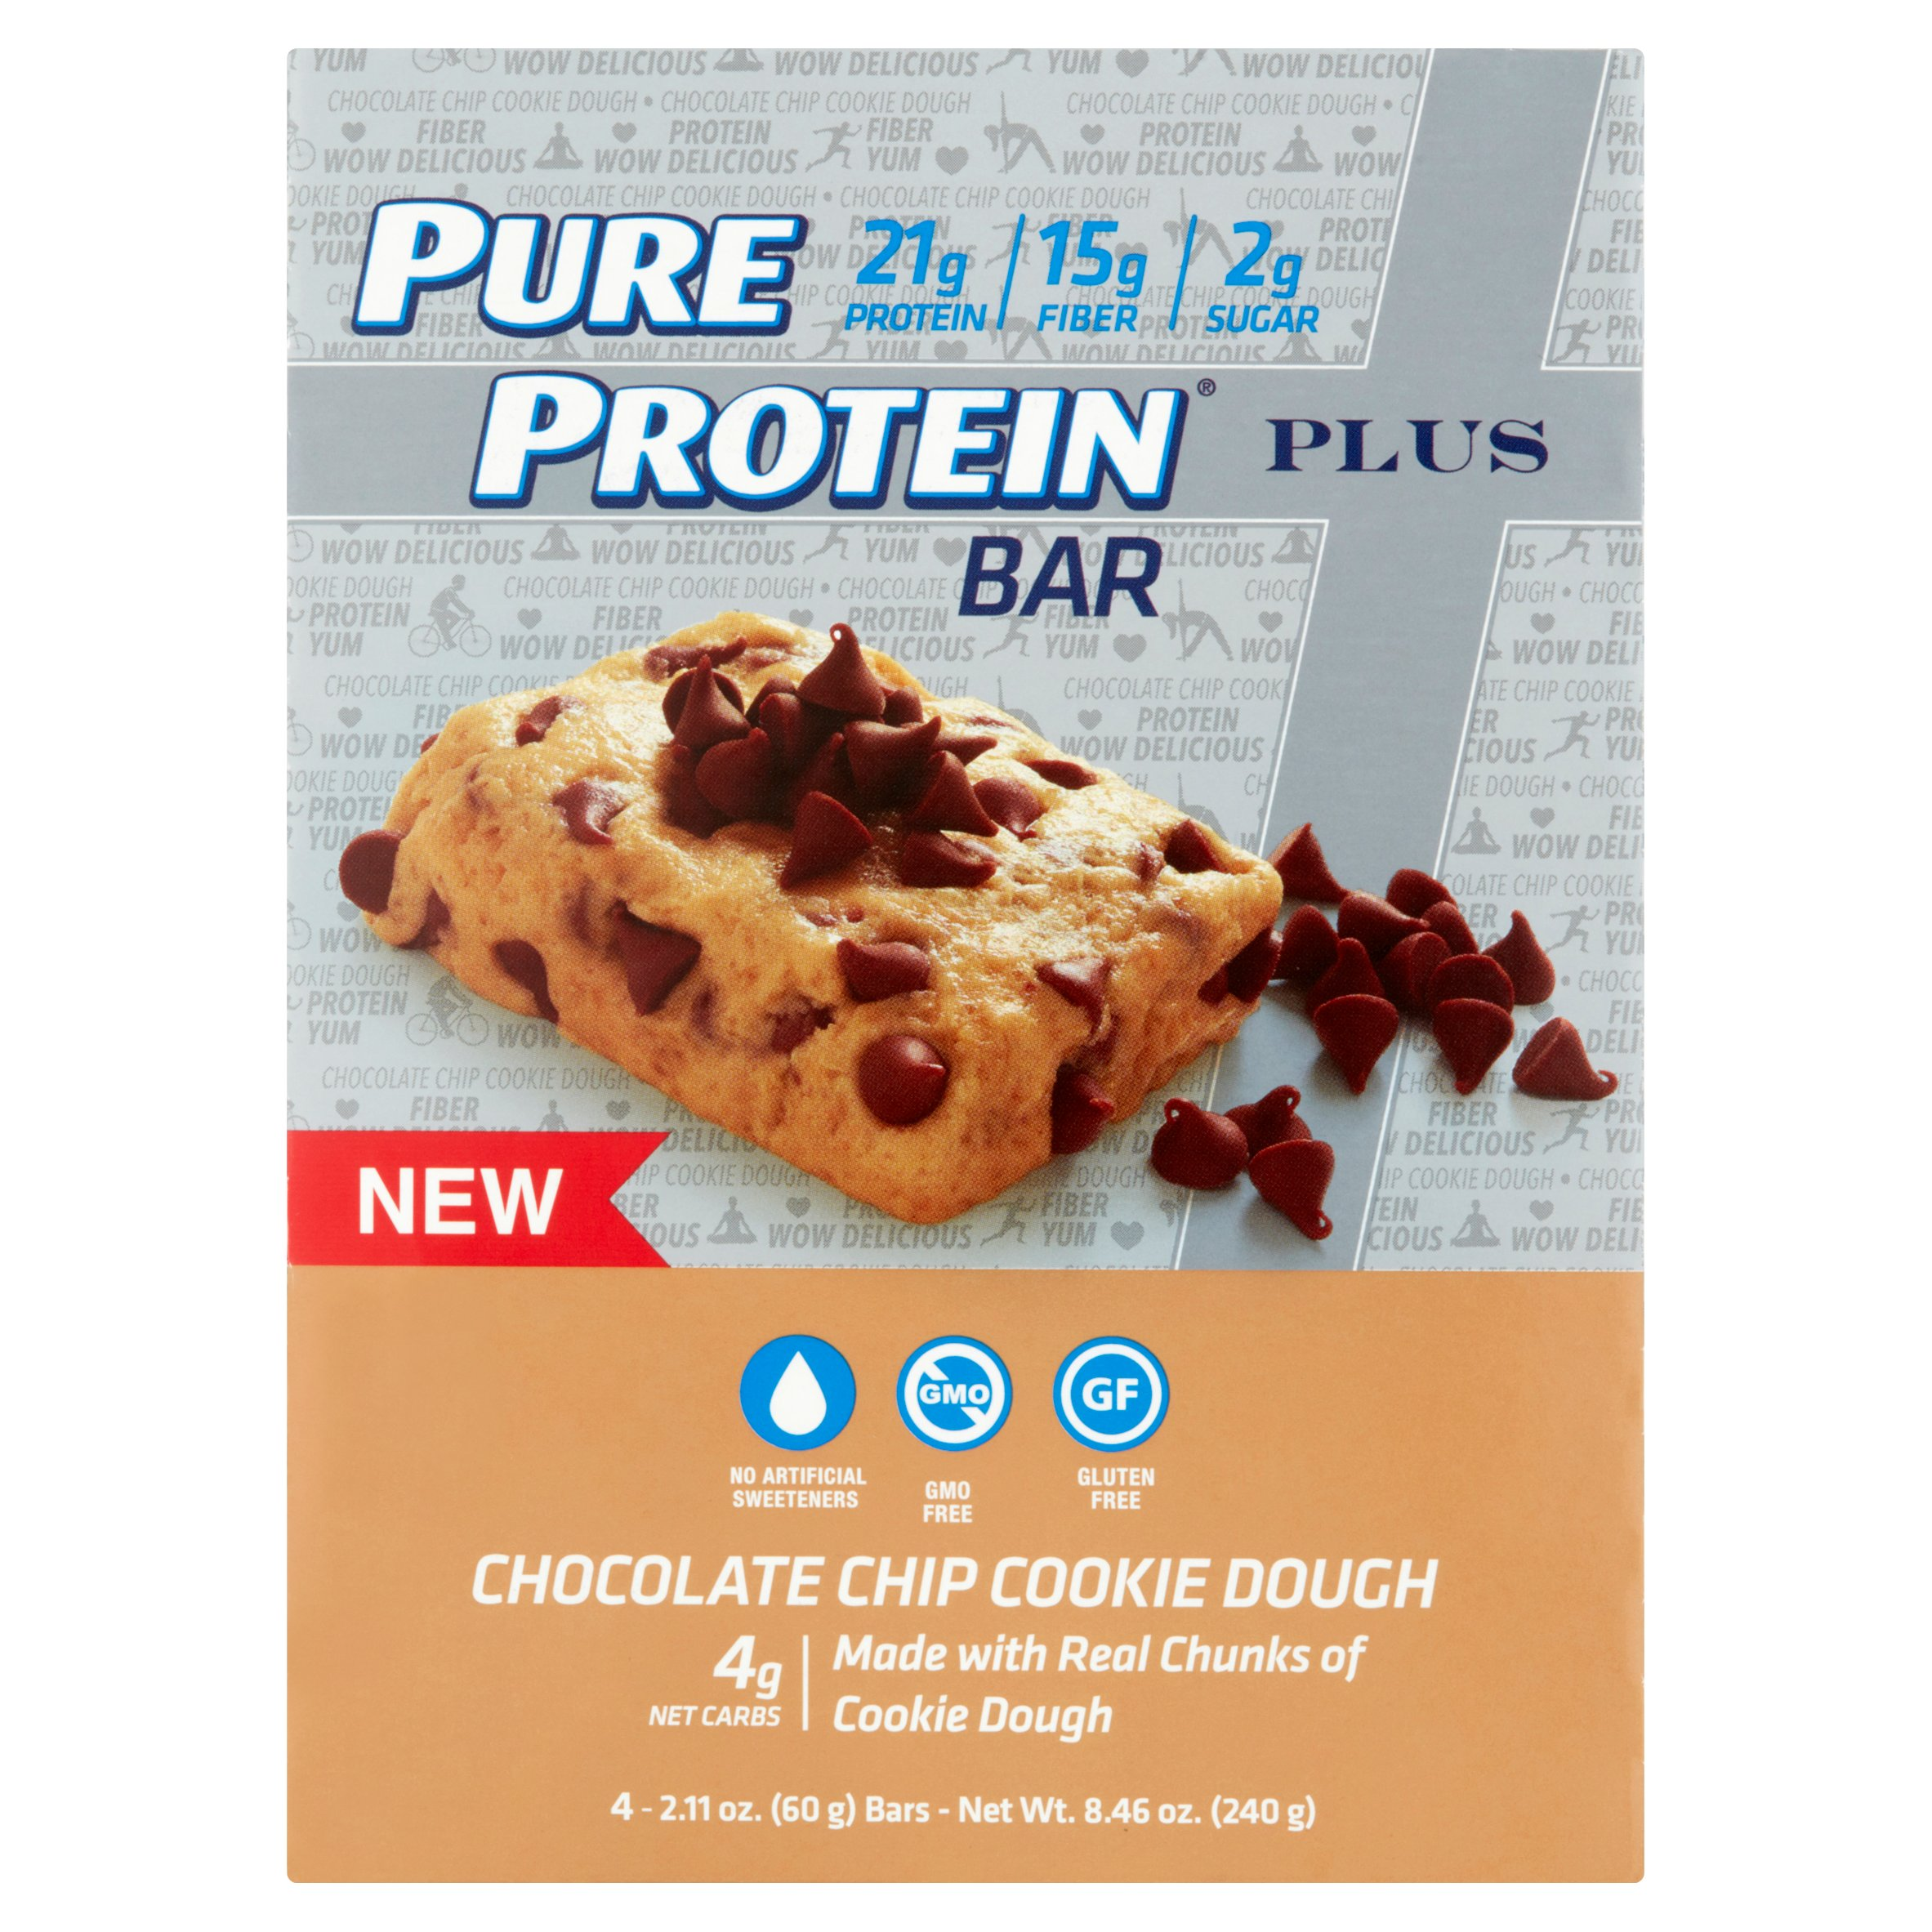 Pure Protein Bar, 21 Grams of Protein, Chocolate Chip Cookie Dough, 2.11 Oz, 4 Ct